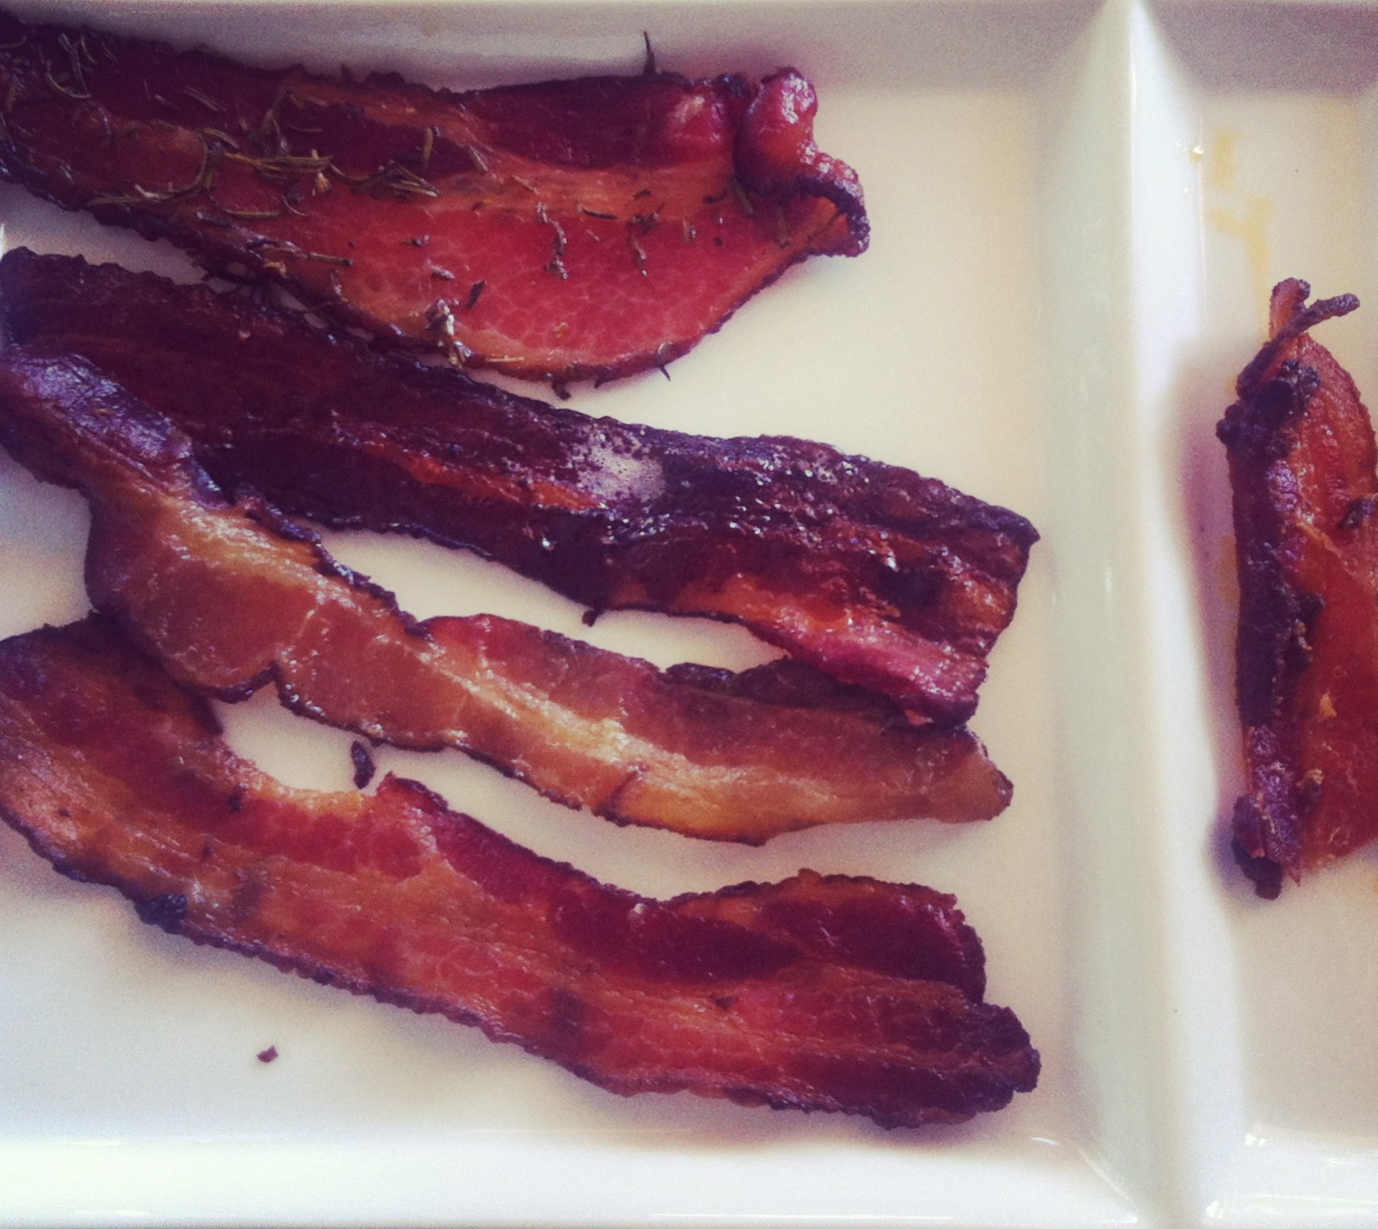 flight of bacon at Cheeky's in Palm Springs